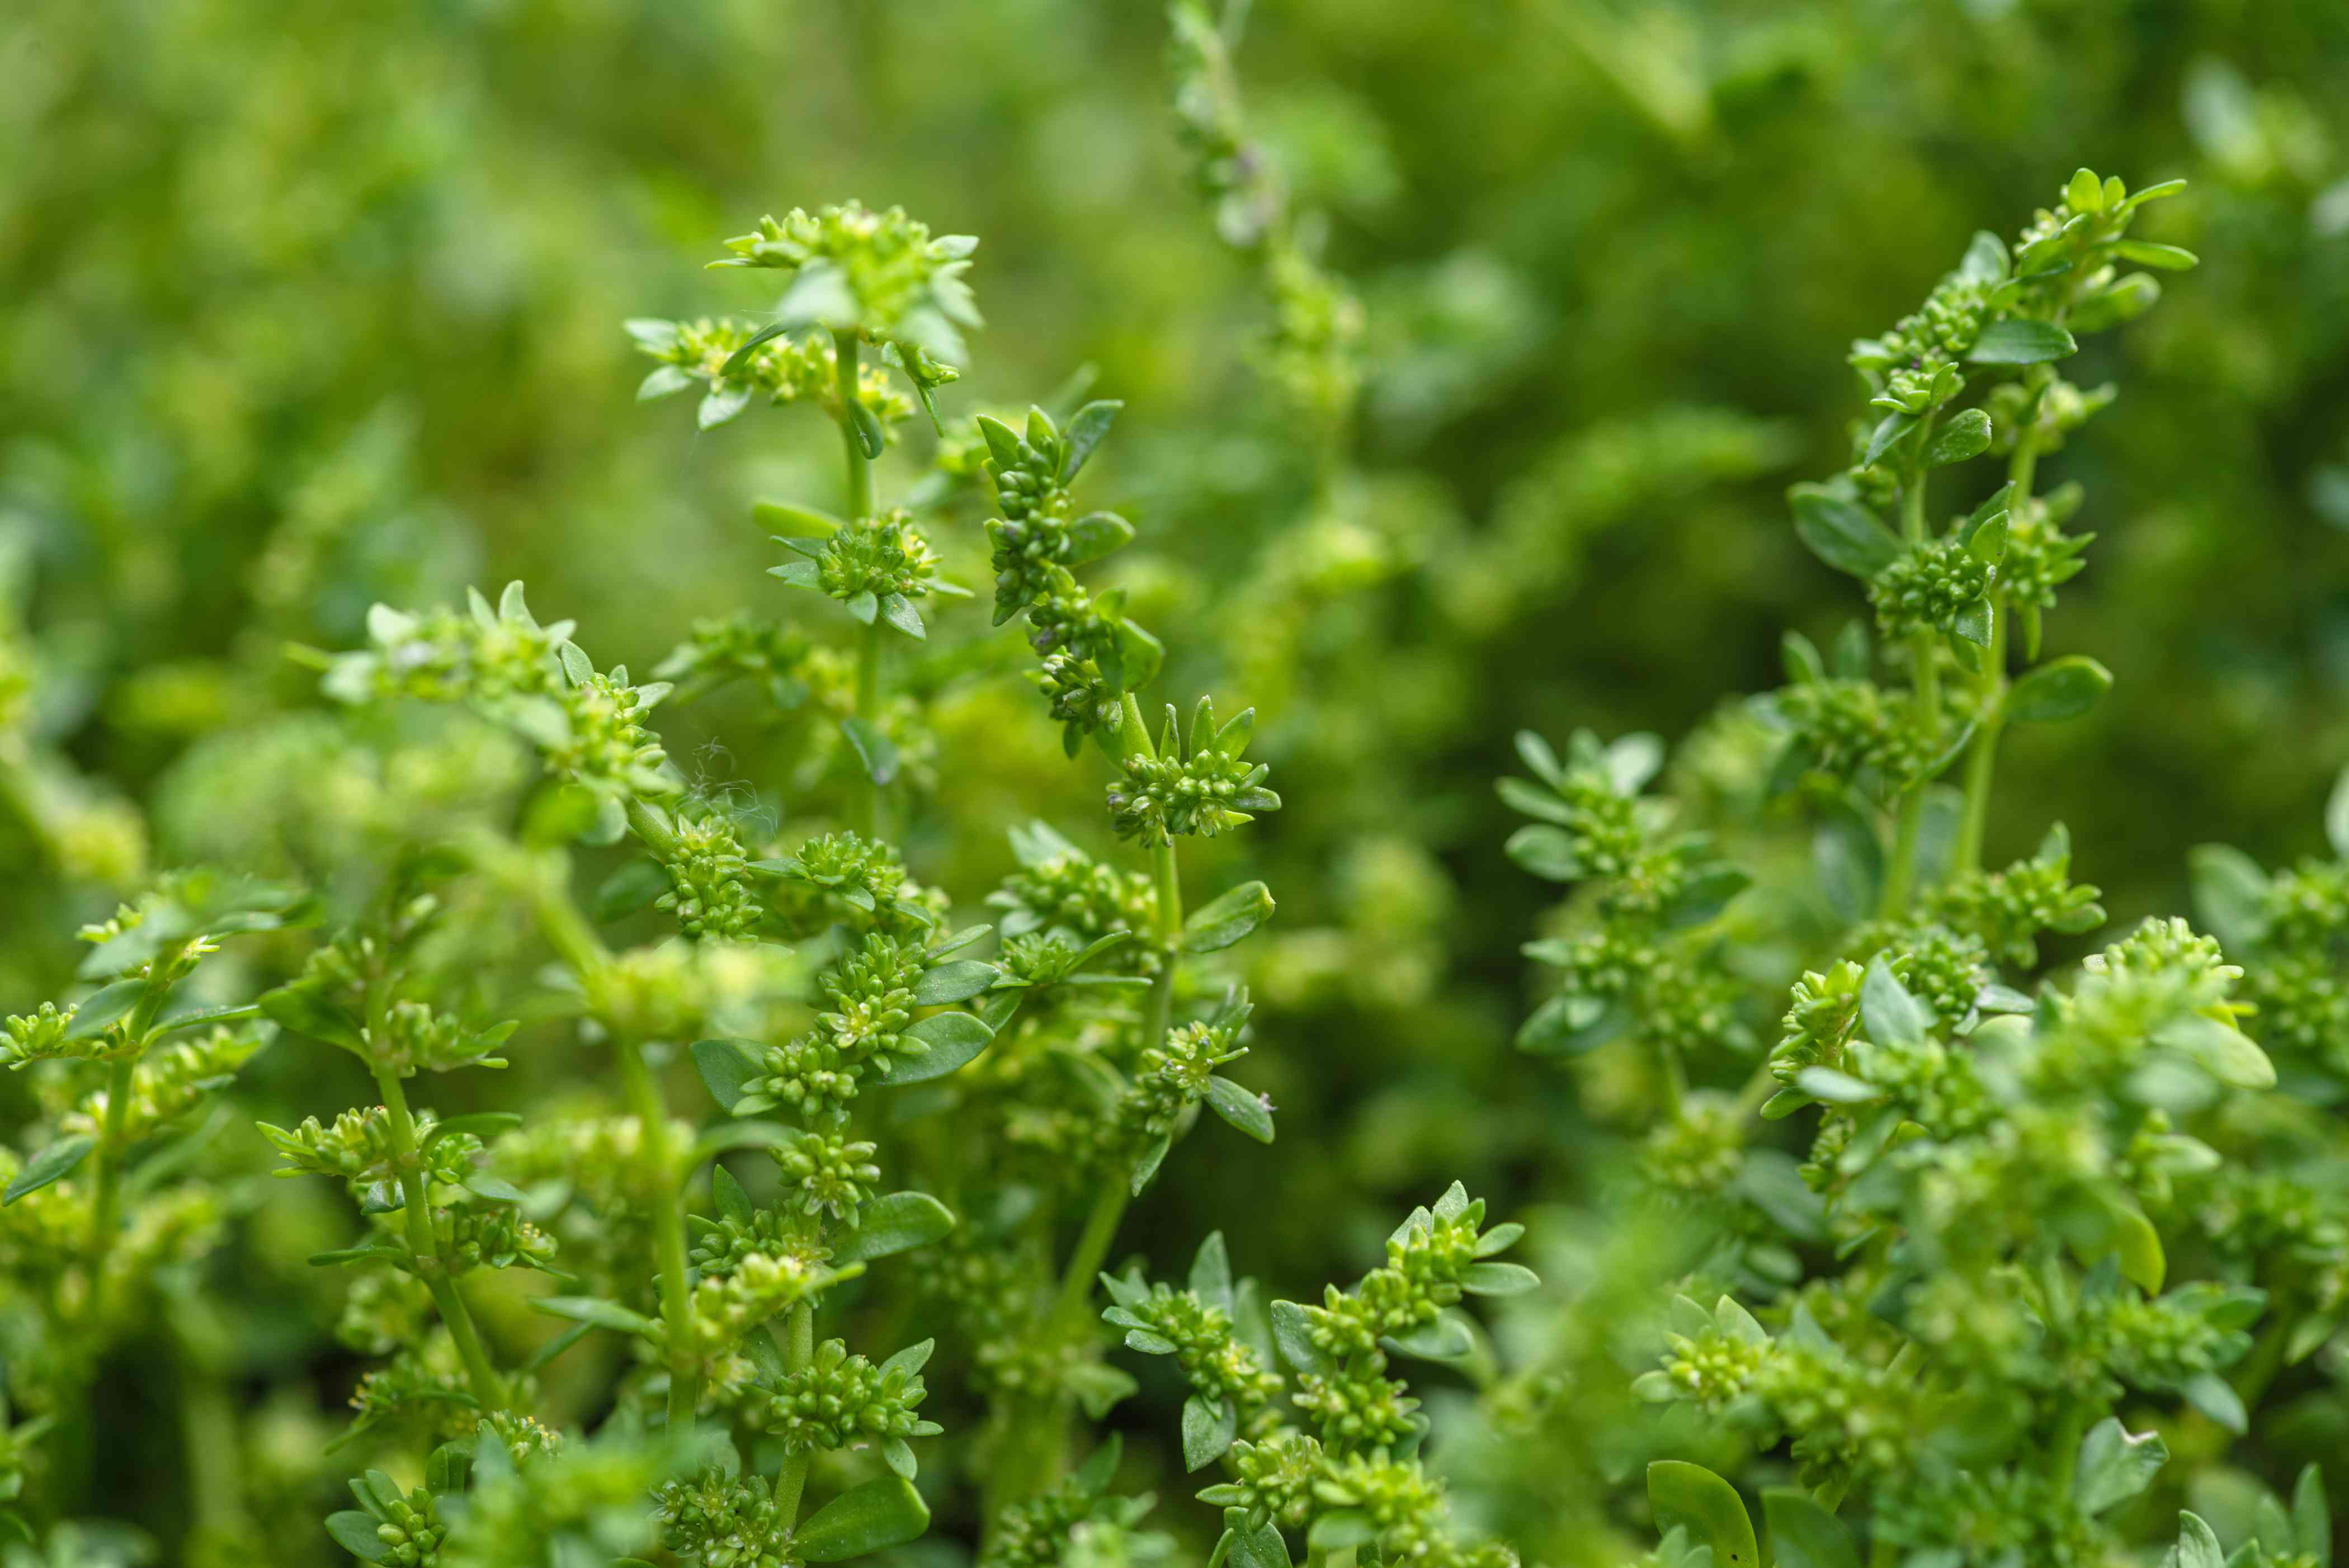 Rupturewort ground cover stems with dense evergreen leaves closeup